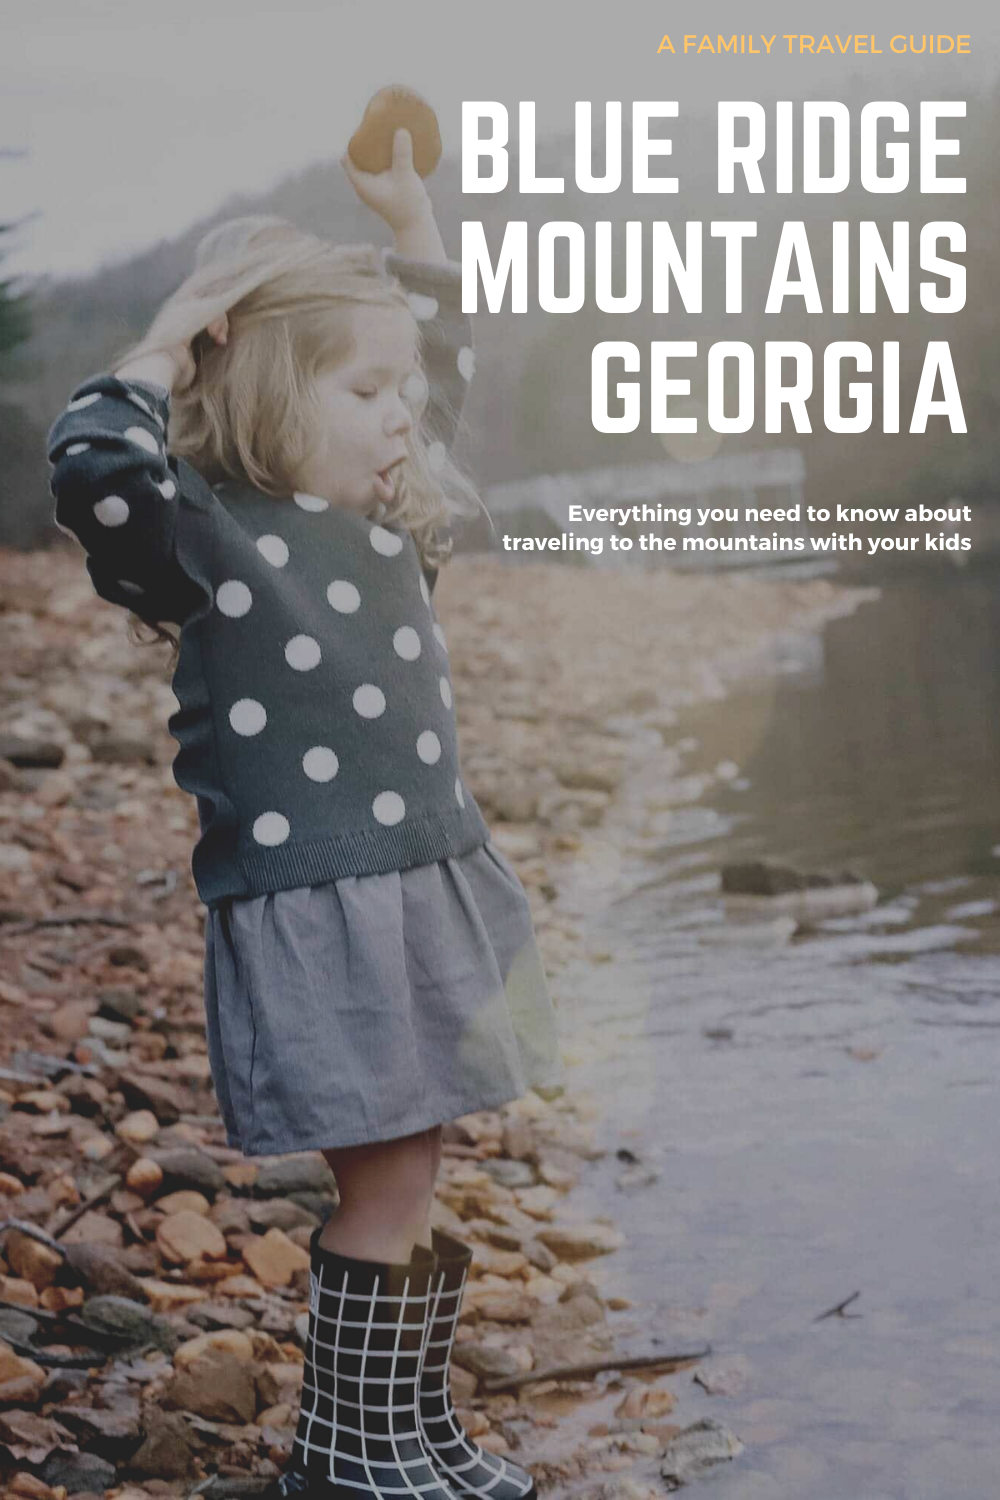 Traveling to the blue ridge mountains with kids